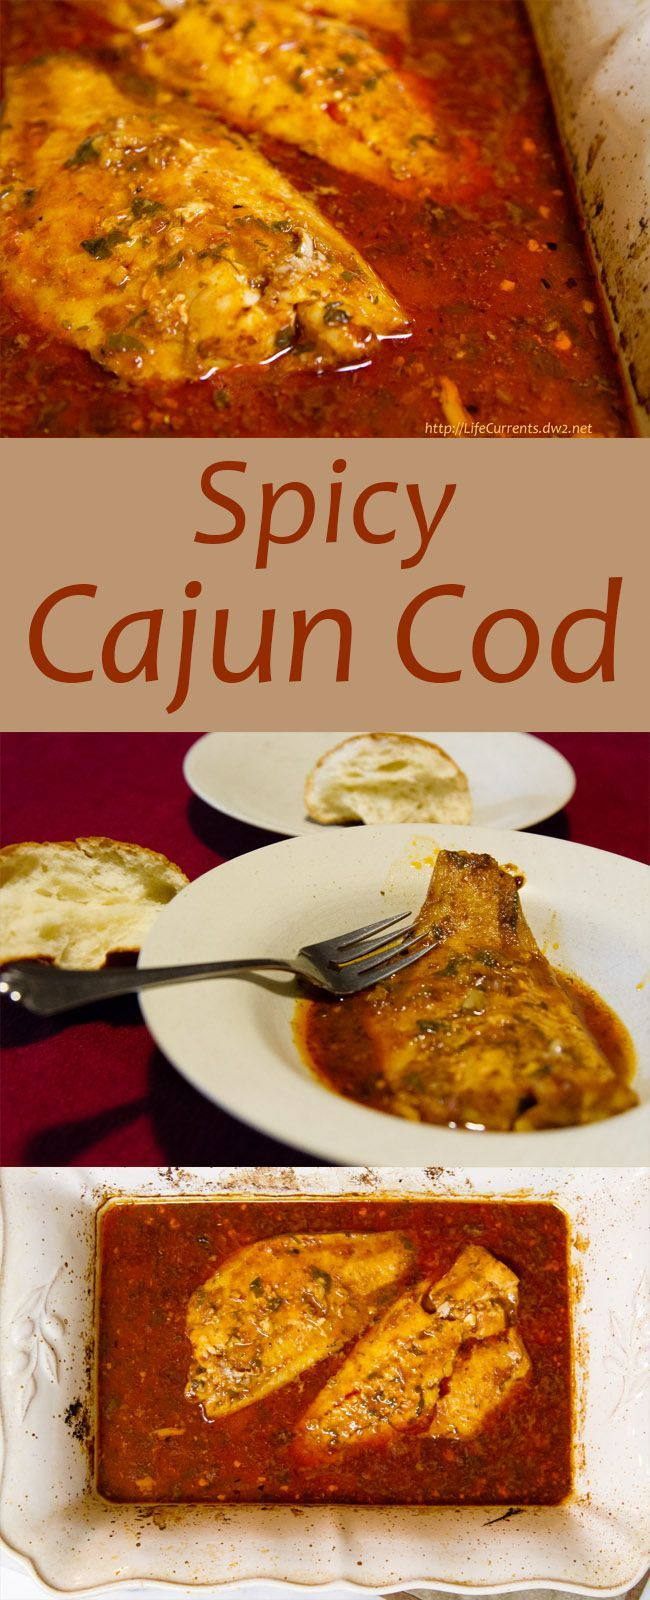 Spicy Cajun Cod: Savory, spicy, fish that you can't quit eating…use crusty, bread to sop up every last drop! This fish could easily be a weeknight meal as well with some French bread and steamed green beans.